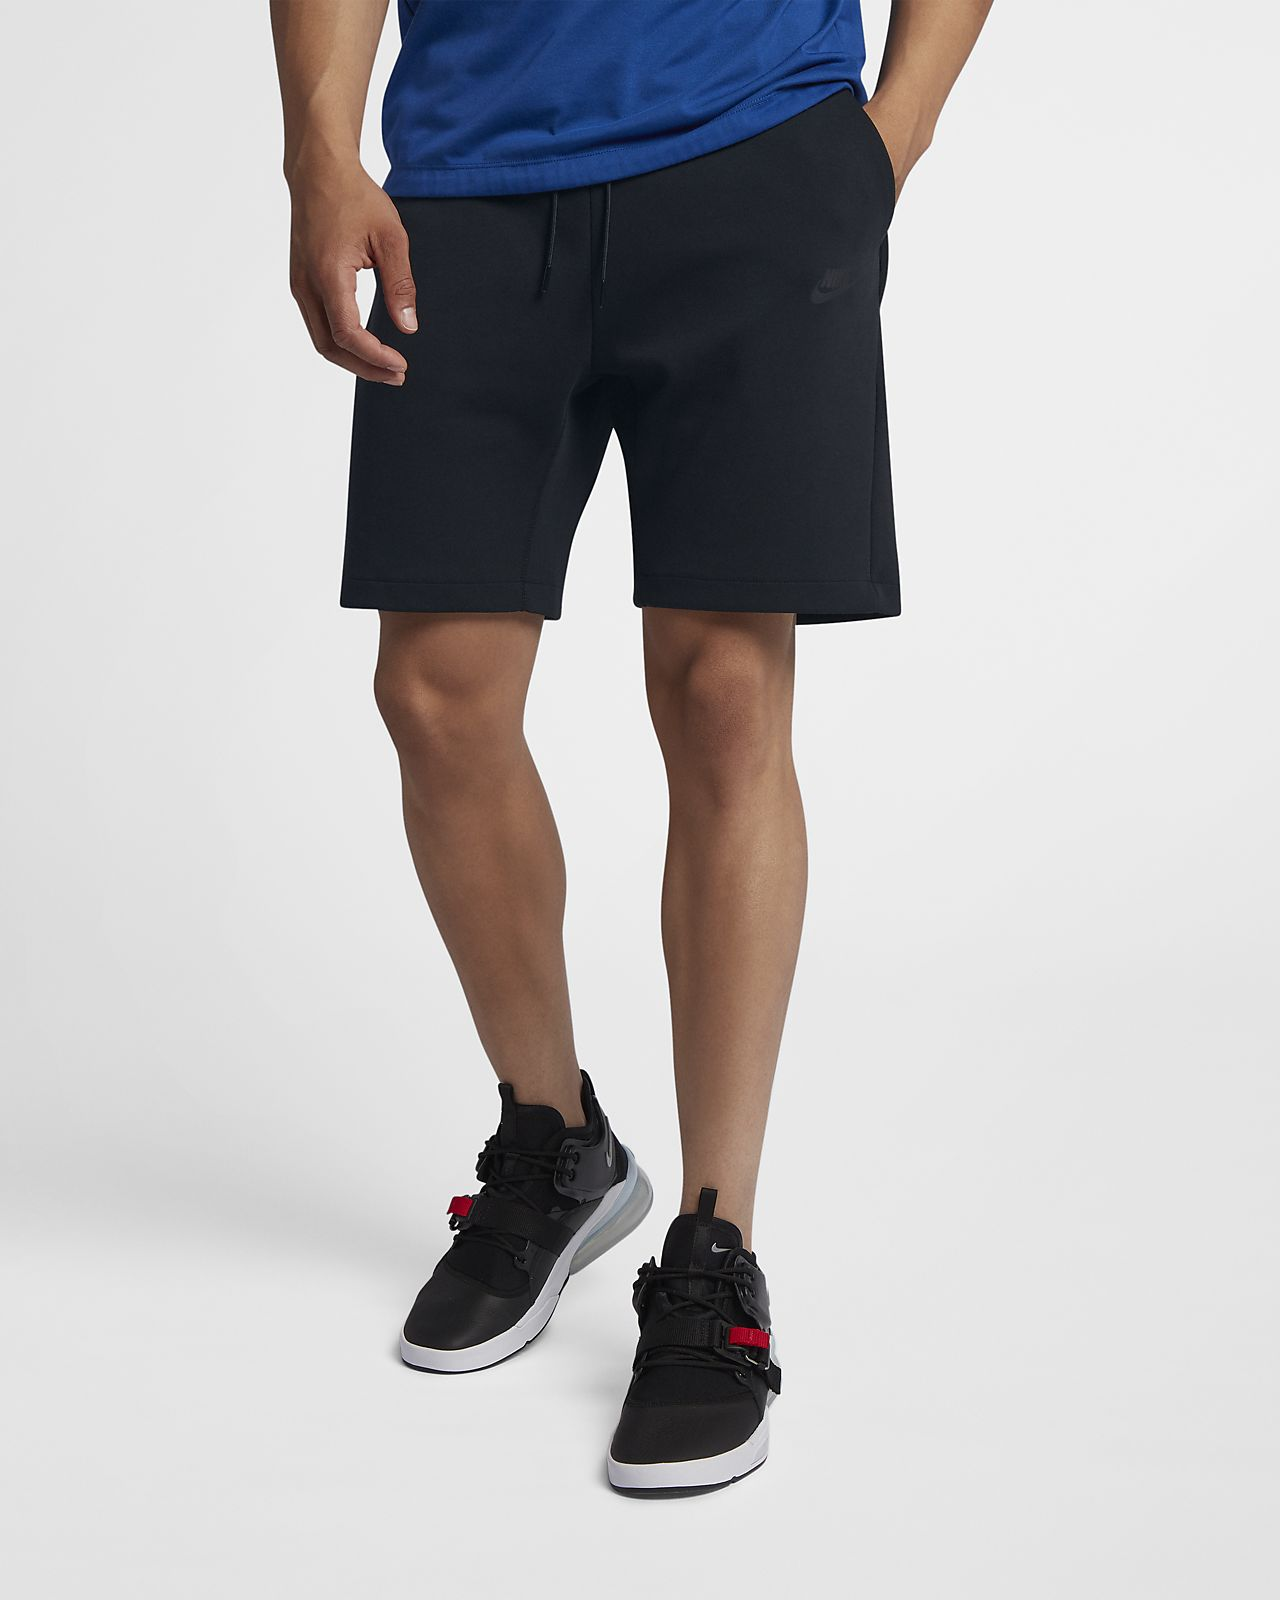 Shorts in fleece Nike Sportswear Tech Fleece - Uomo